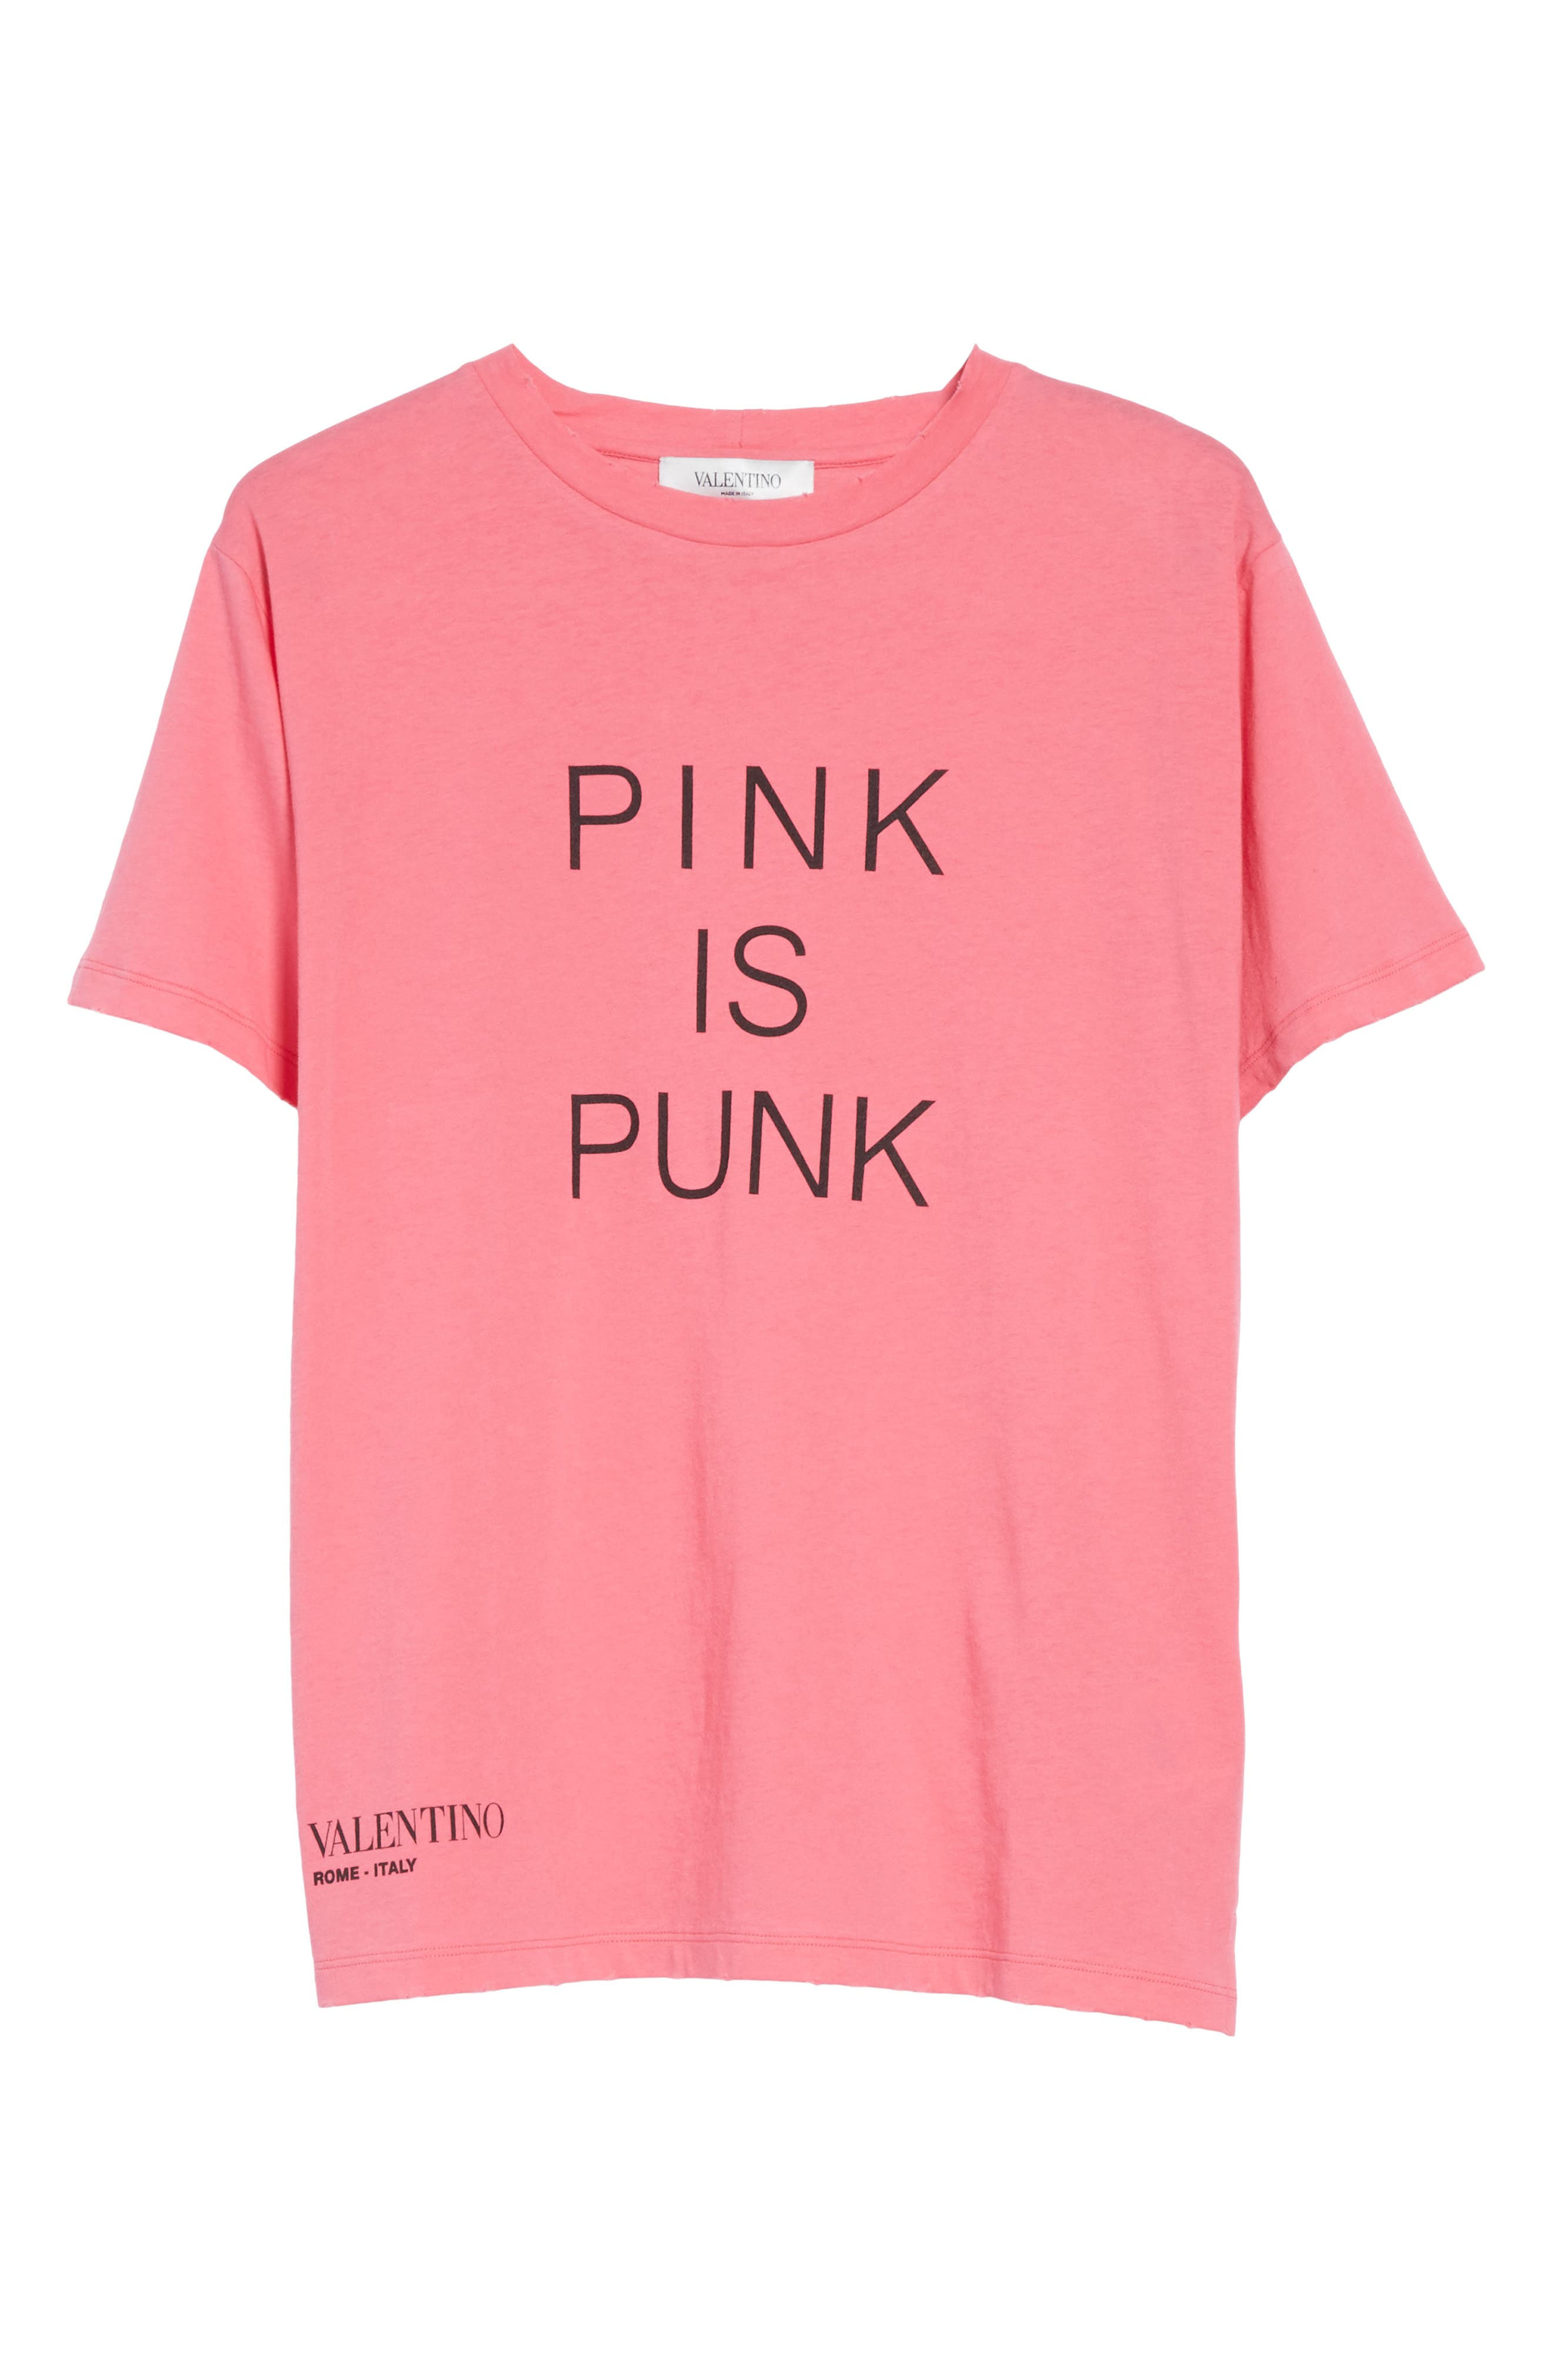 Pink Is Punk Cotton Tee,                             Alternate thumbnail 6, color,